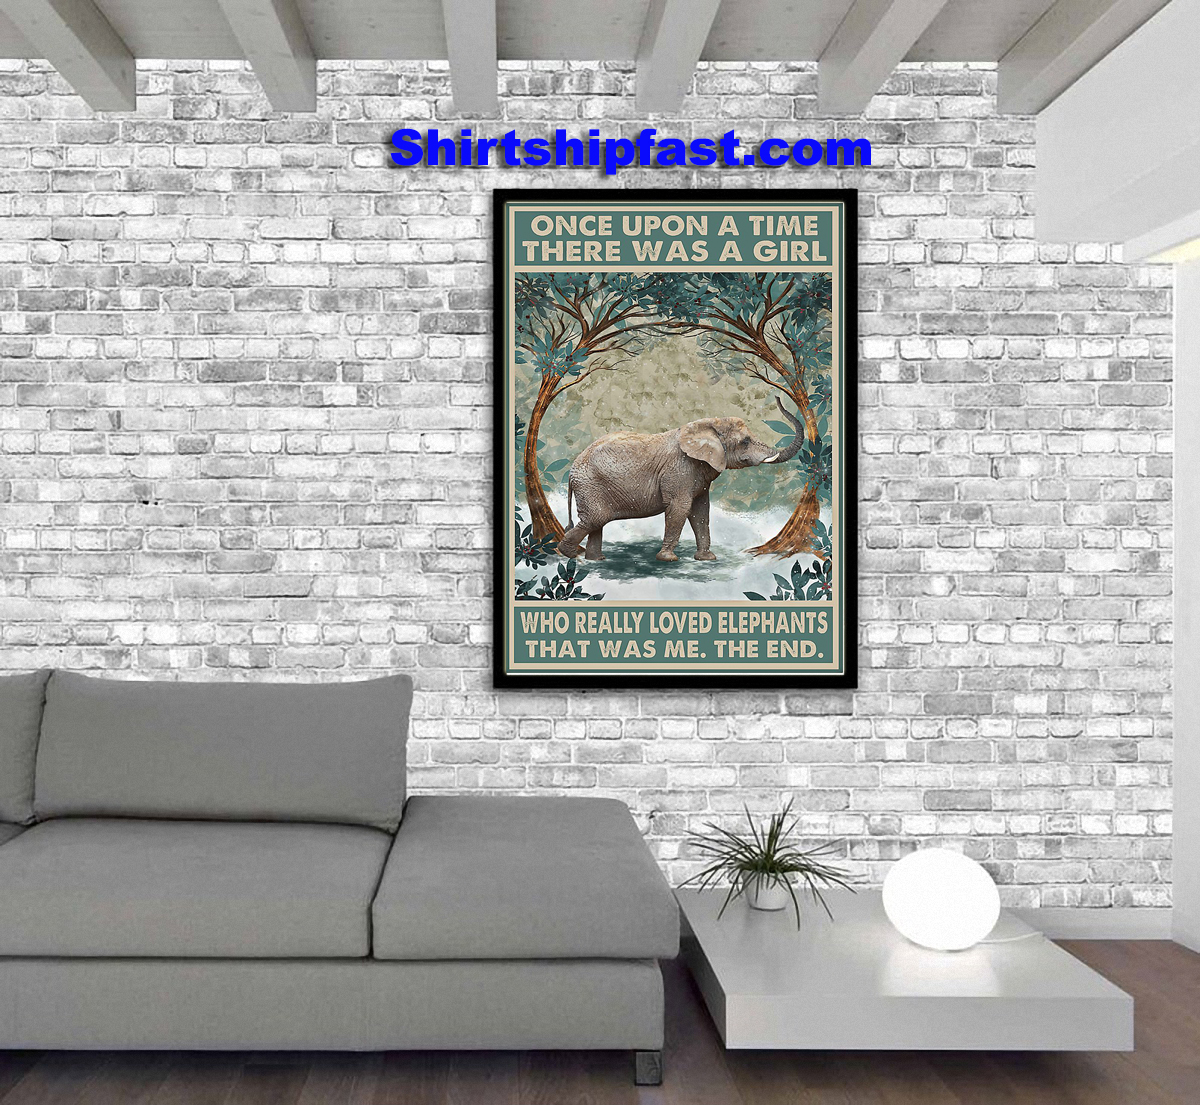 Elephant Once upon a time there was a girl who really loved elephants poster - Picture 2